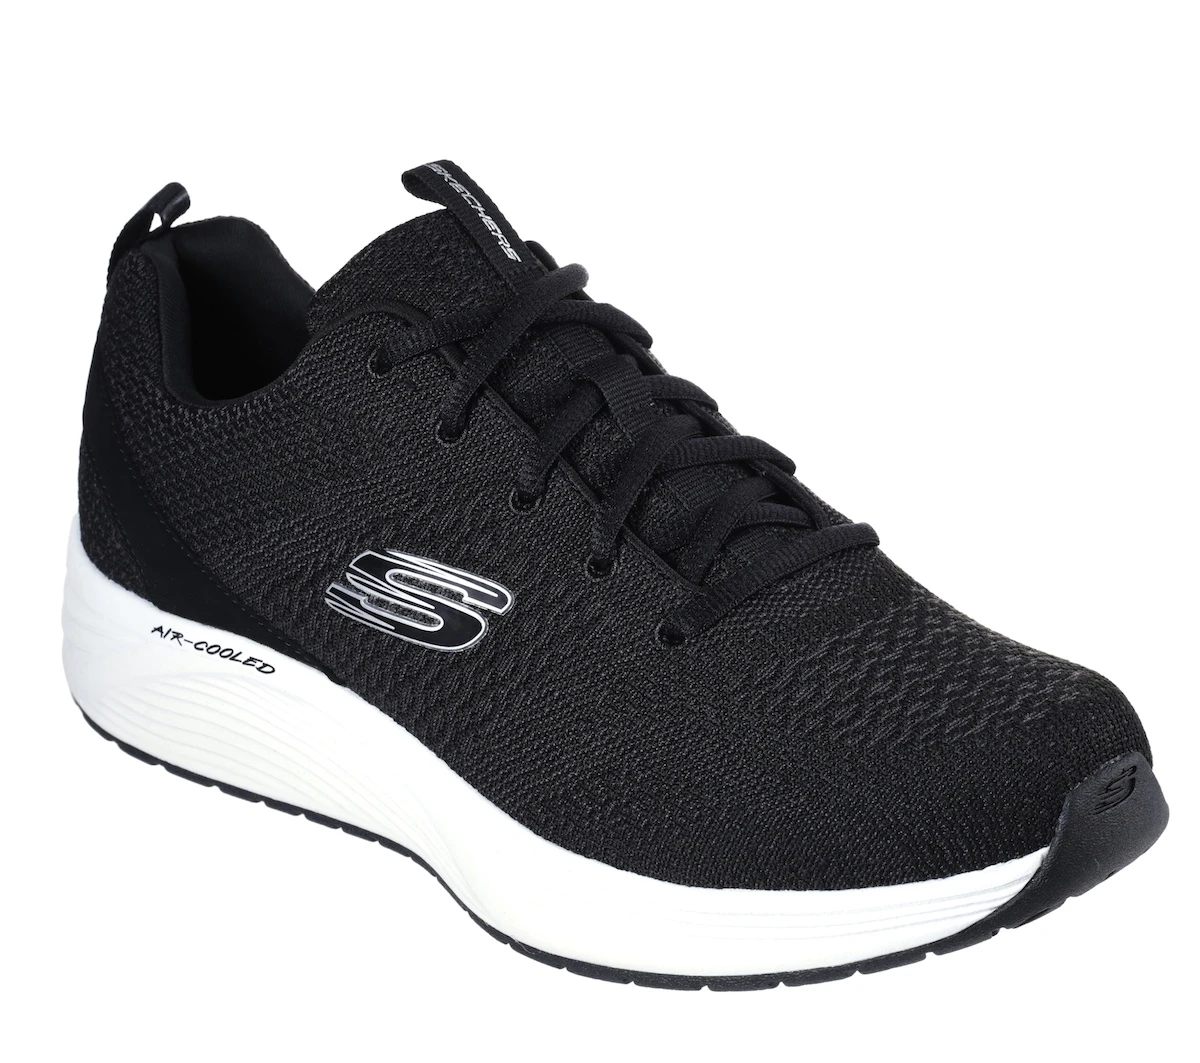 skechers black and white shoes